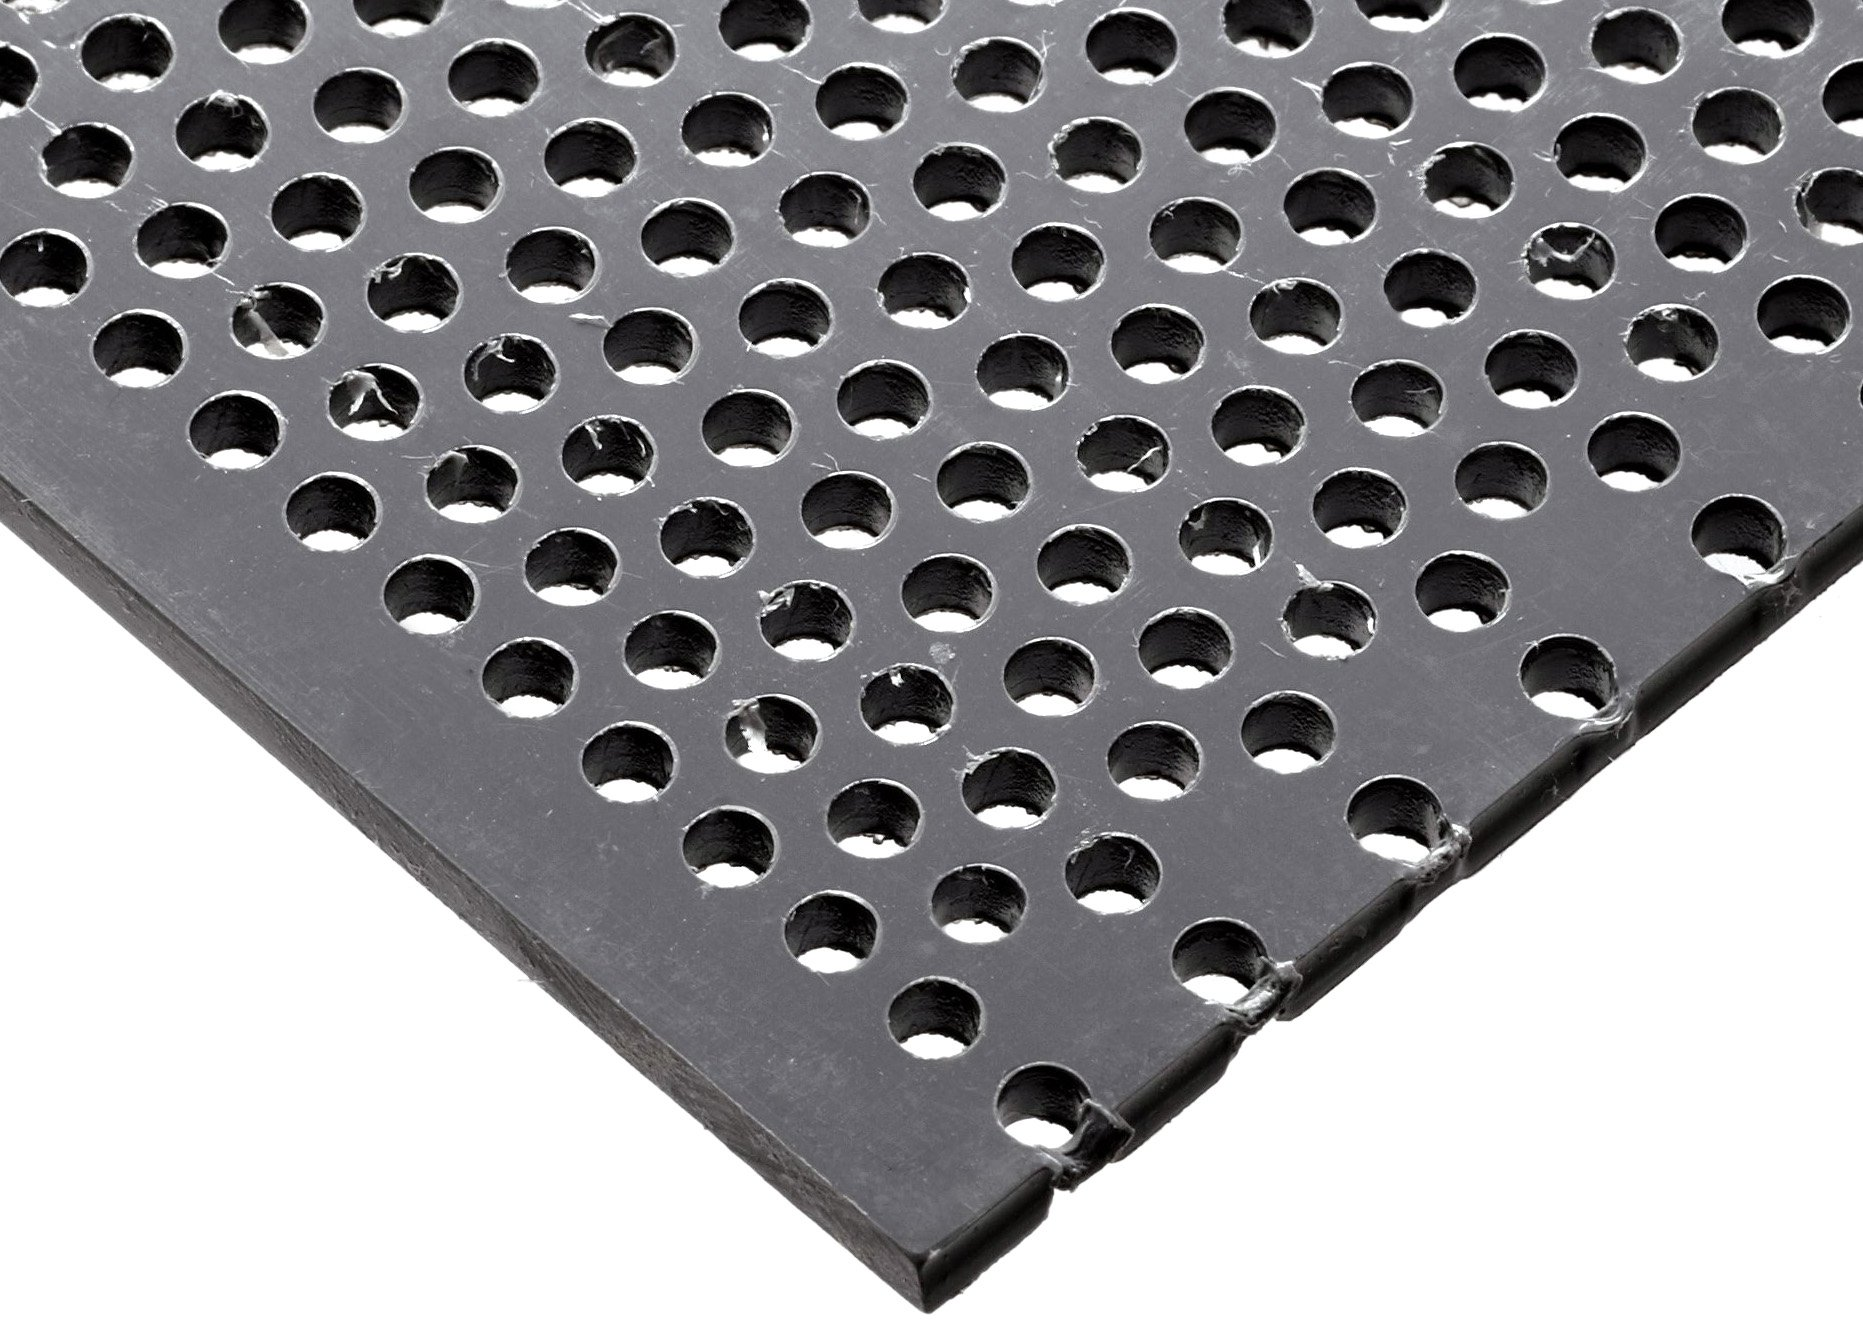 PVC (Polyvinyl Chloride) Perforated Sheet, Staggered Holes, Opaque Gray, 0.125'' Thickness, 12'' Width, 12'' Length, Staggered 1/8'' Holes, 0.2187'' Center to Center